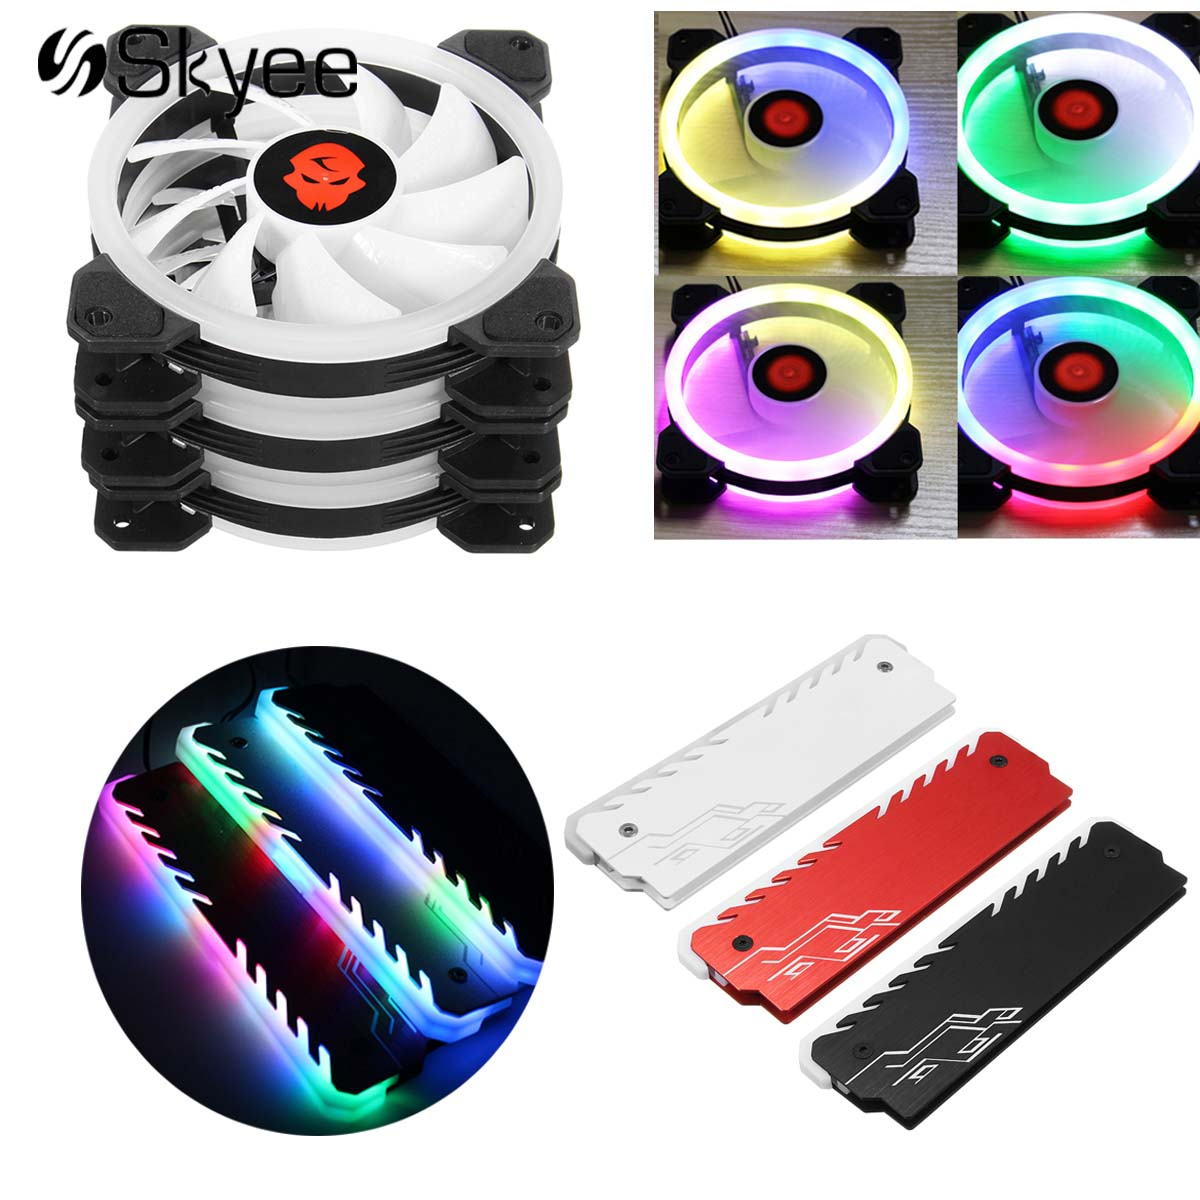 Quiet Computer Case PC RGB Cooling Fan 120mm + Aluminum RAM Memory Cooling Vest Cooling Cooler Shell PC CPU Radiator Heatsink thermalright le grand macho rt computer coolers amd intel cpu heatsink radiatorlga 775 2011 1366 am3 am4 fm2 fm1 coolers fan